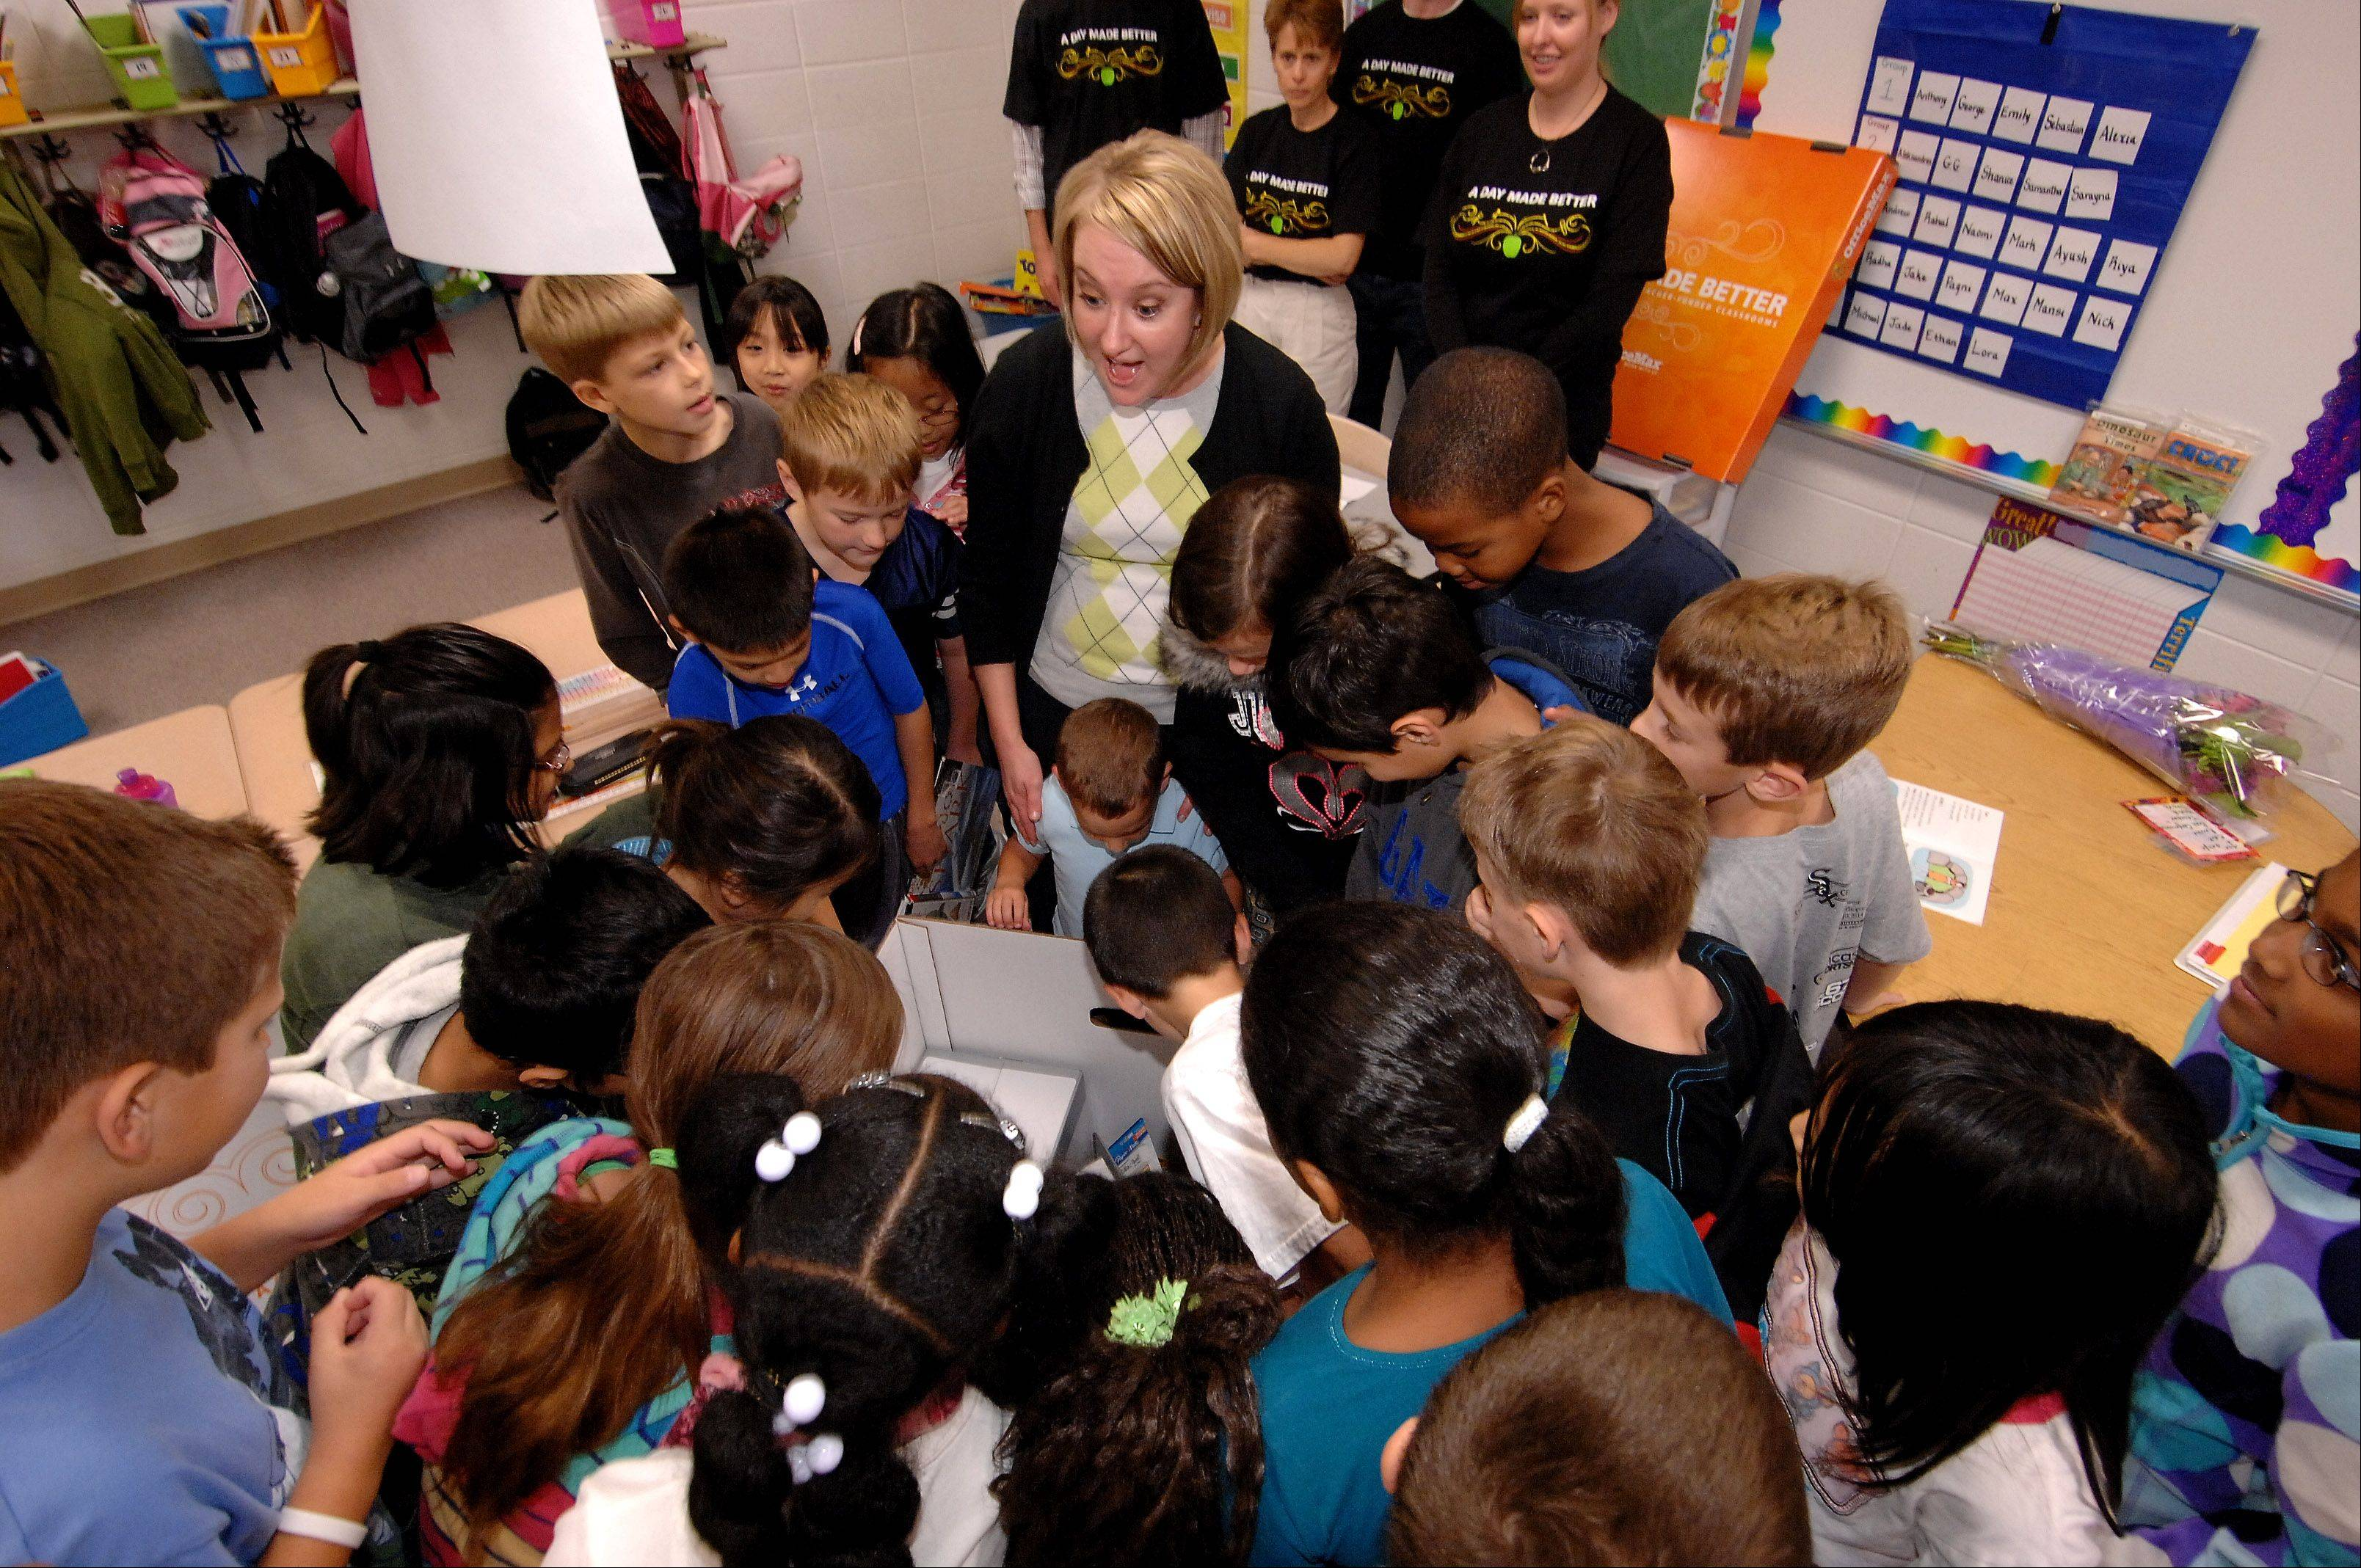 Third-grade teacher Becky Sikora opens a box full of supplies with her students Tuesday at Welch Elementary School in Naperville. Sikora was one of three Indian Prairie Unit District 204 teachers to receive $1,000 worth of supplies from OfficeMax as part of the company's national A Day Made Better campaign.